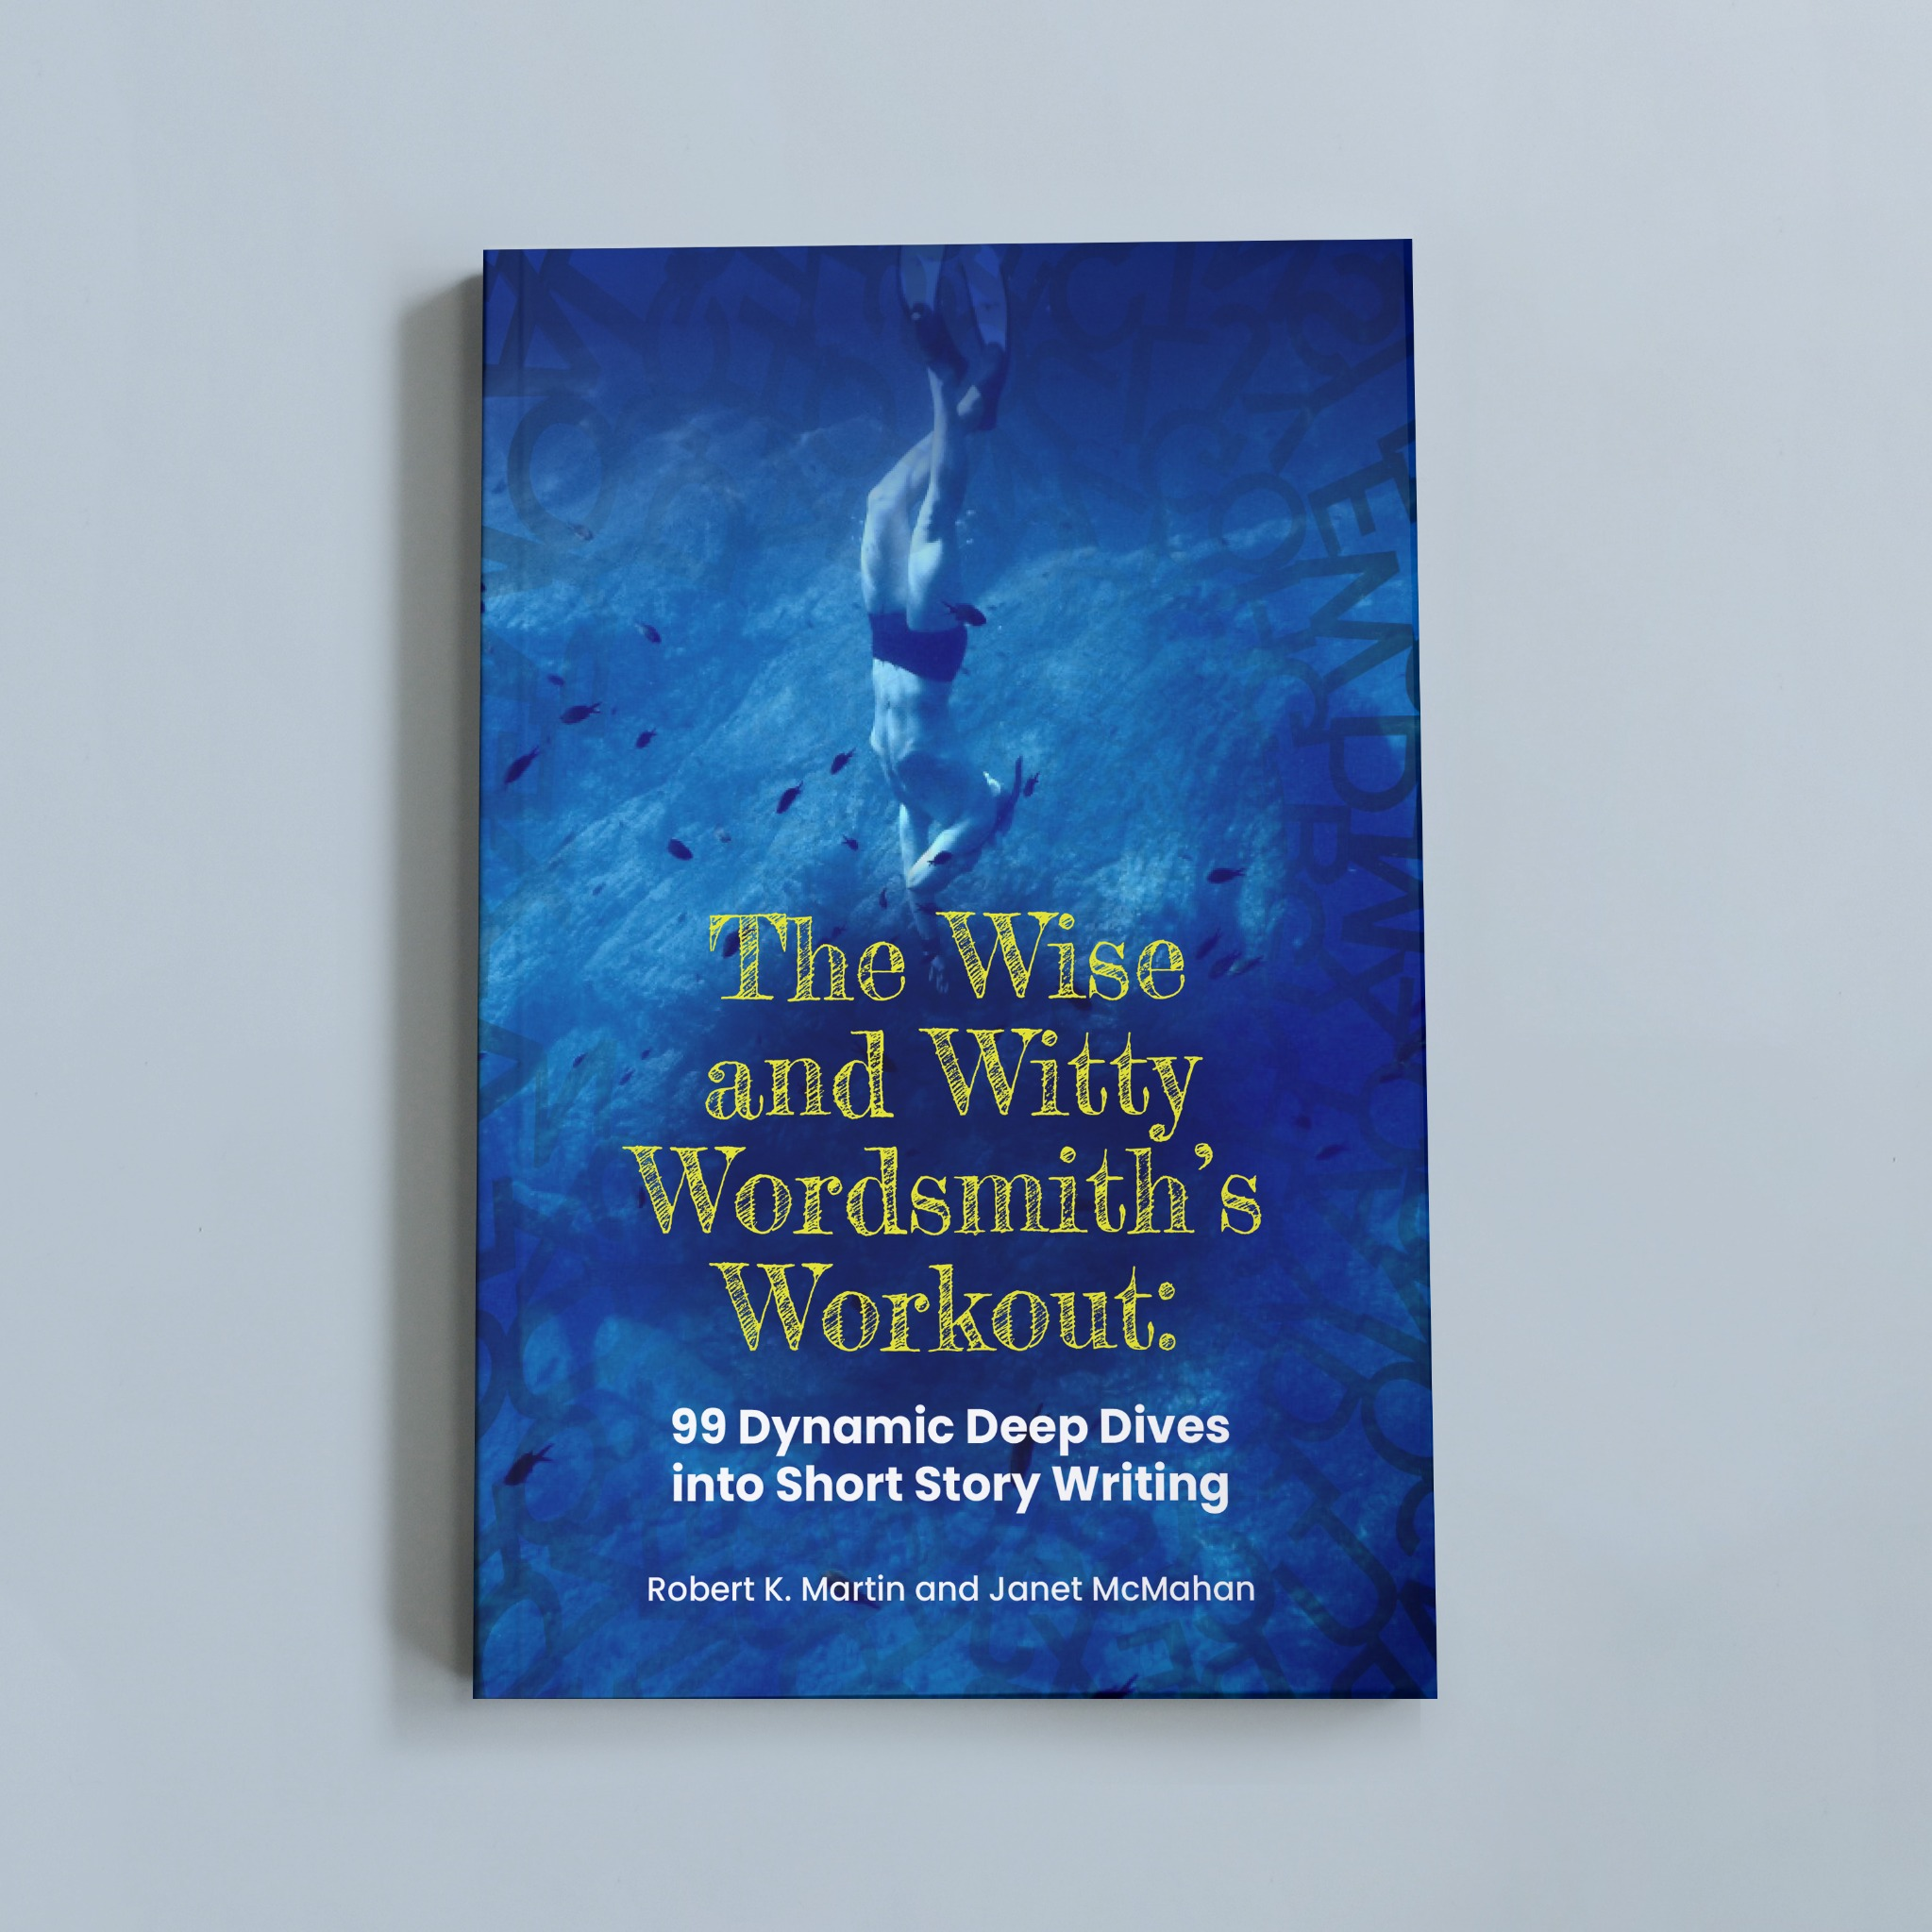 The Wise and Witty Wordsmith's Workout: 99 Dynamic Deep Dives into Short Story Writing (P)